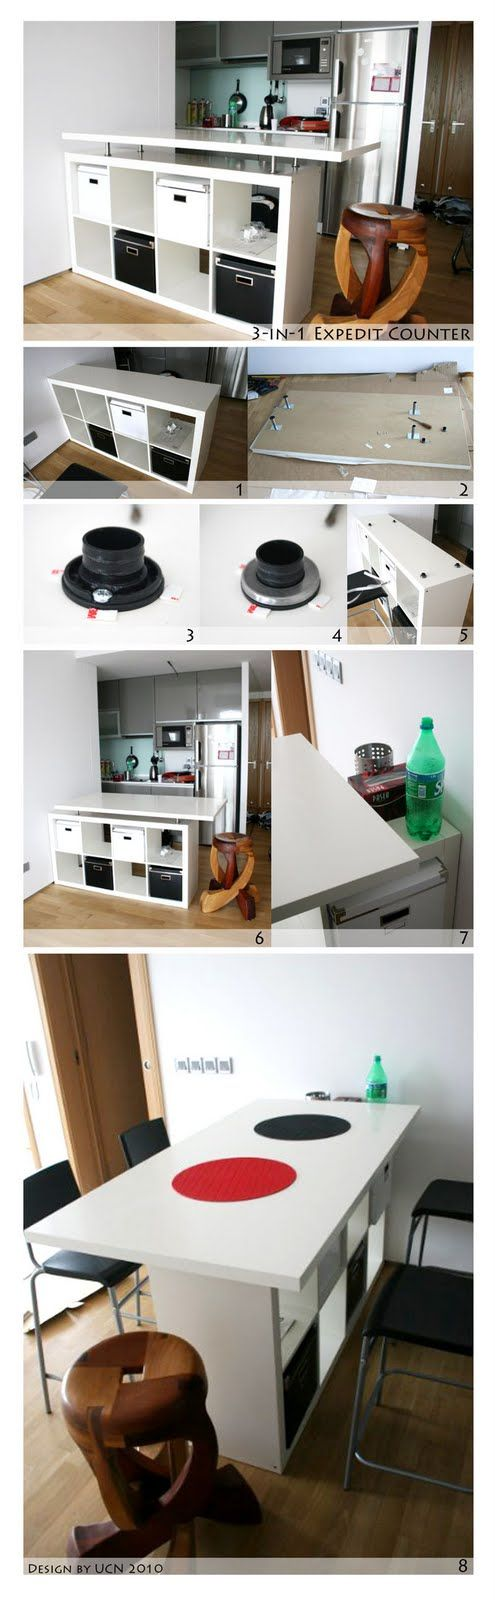 Jugendzimmer Komplett Günstig Kaufen Ikea ~ DIY kitchen island from ikea bookcase  Kitchen island ideas  Pinter